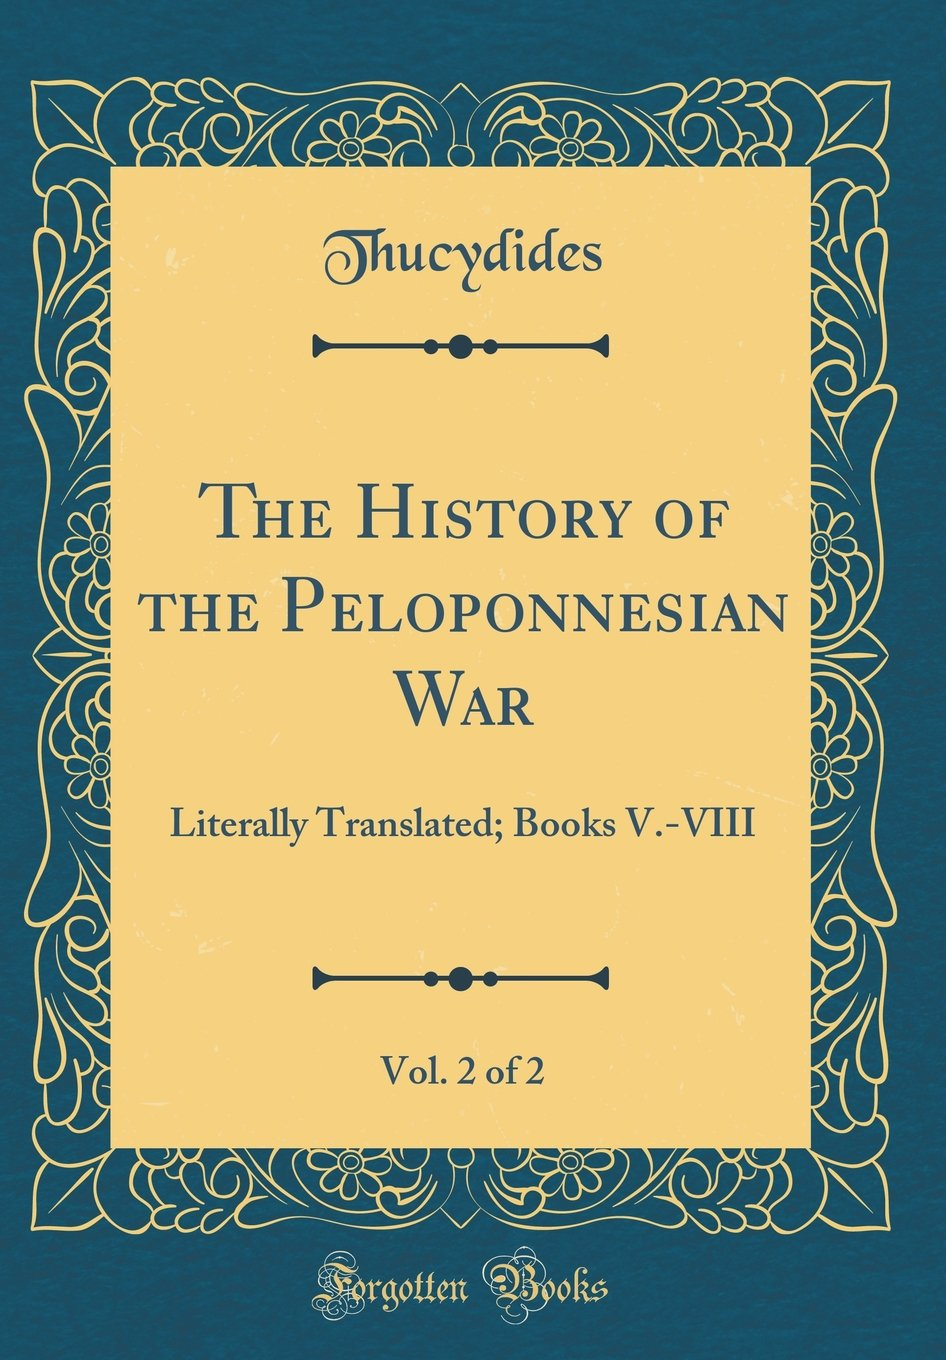 Download The History of the Peloponnesian War, Vol. 2 of 2: Literally Translated; Books V.-VIII (Classic Reprint) ebook